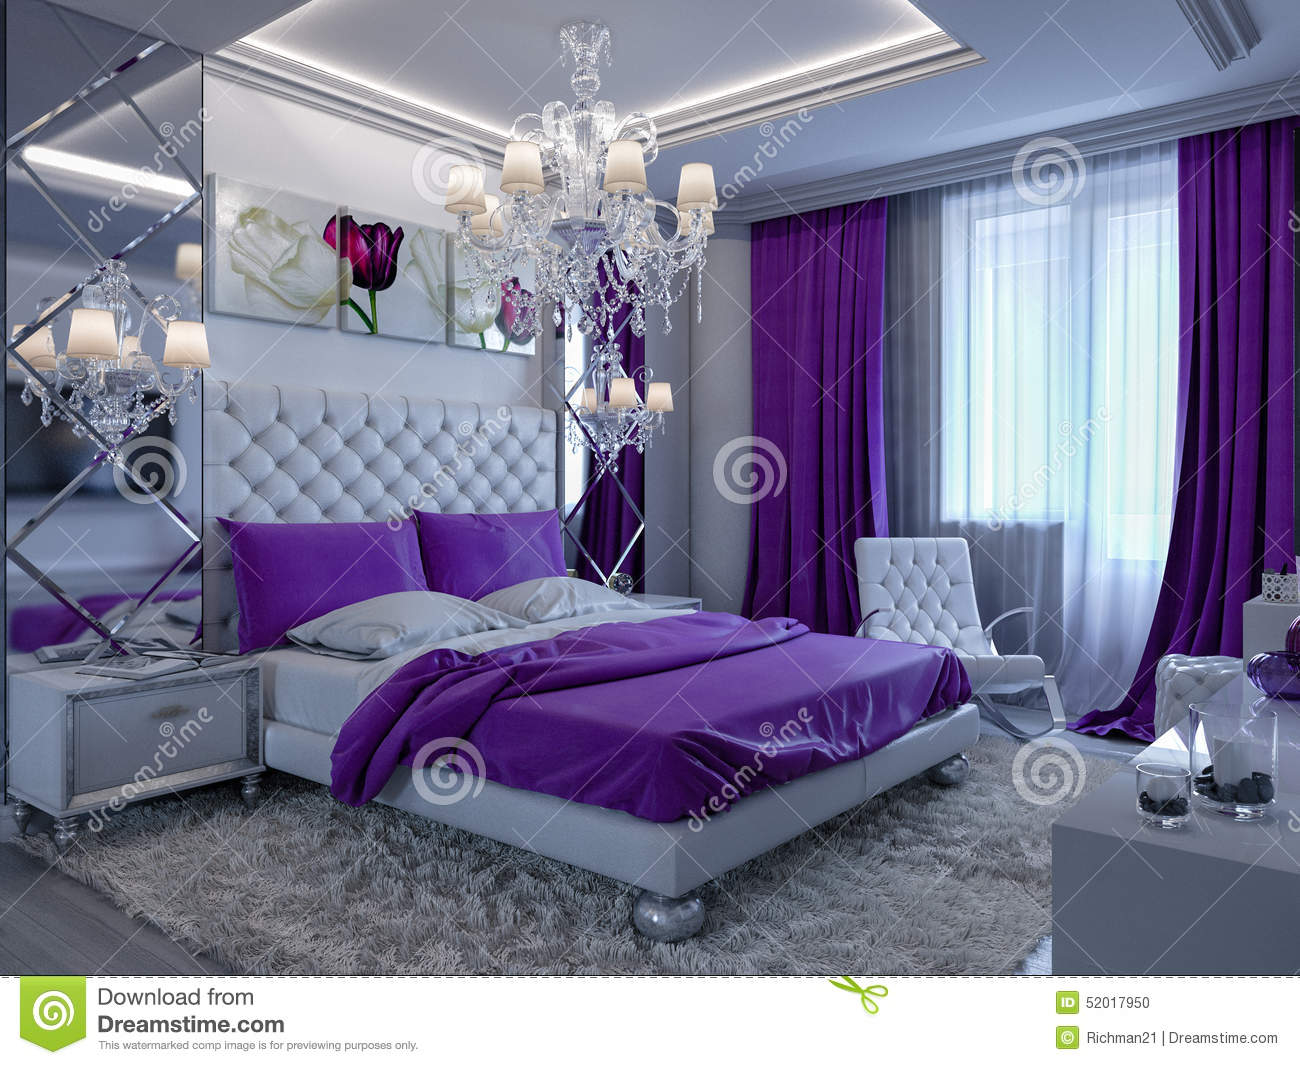 3d Rendering Bedroom In Gray And White Tones With Purple